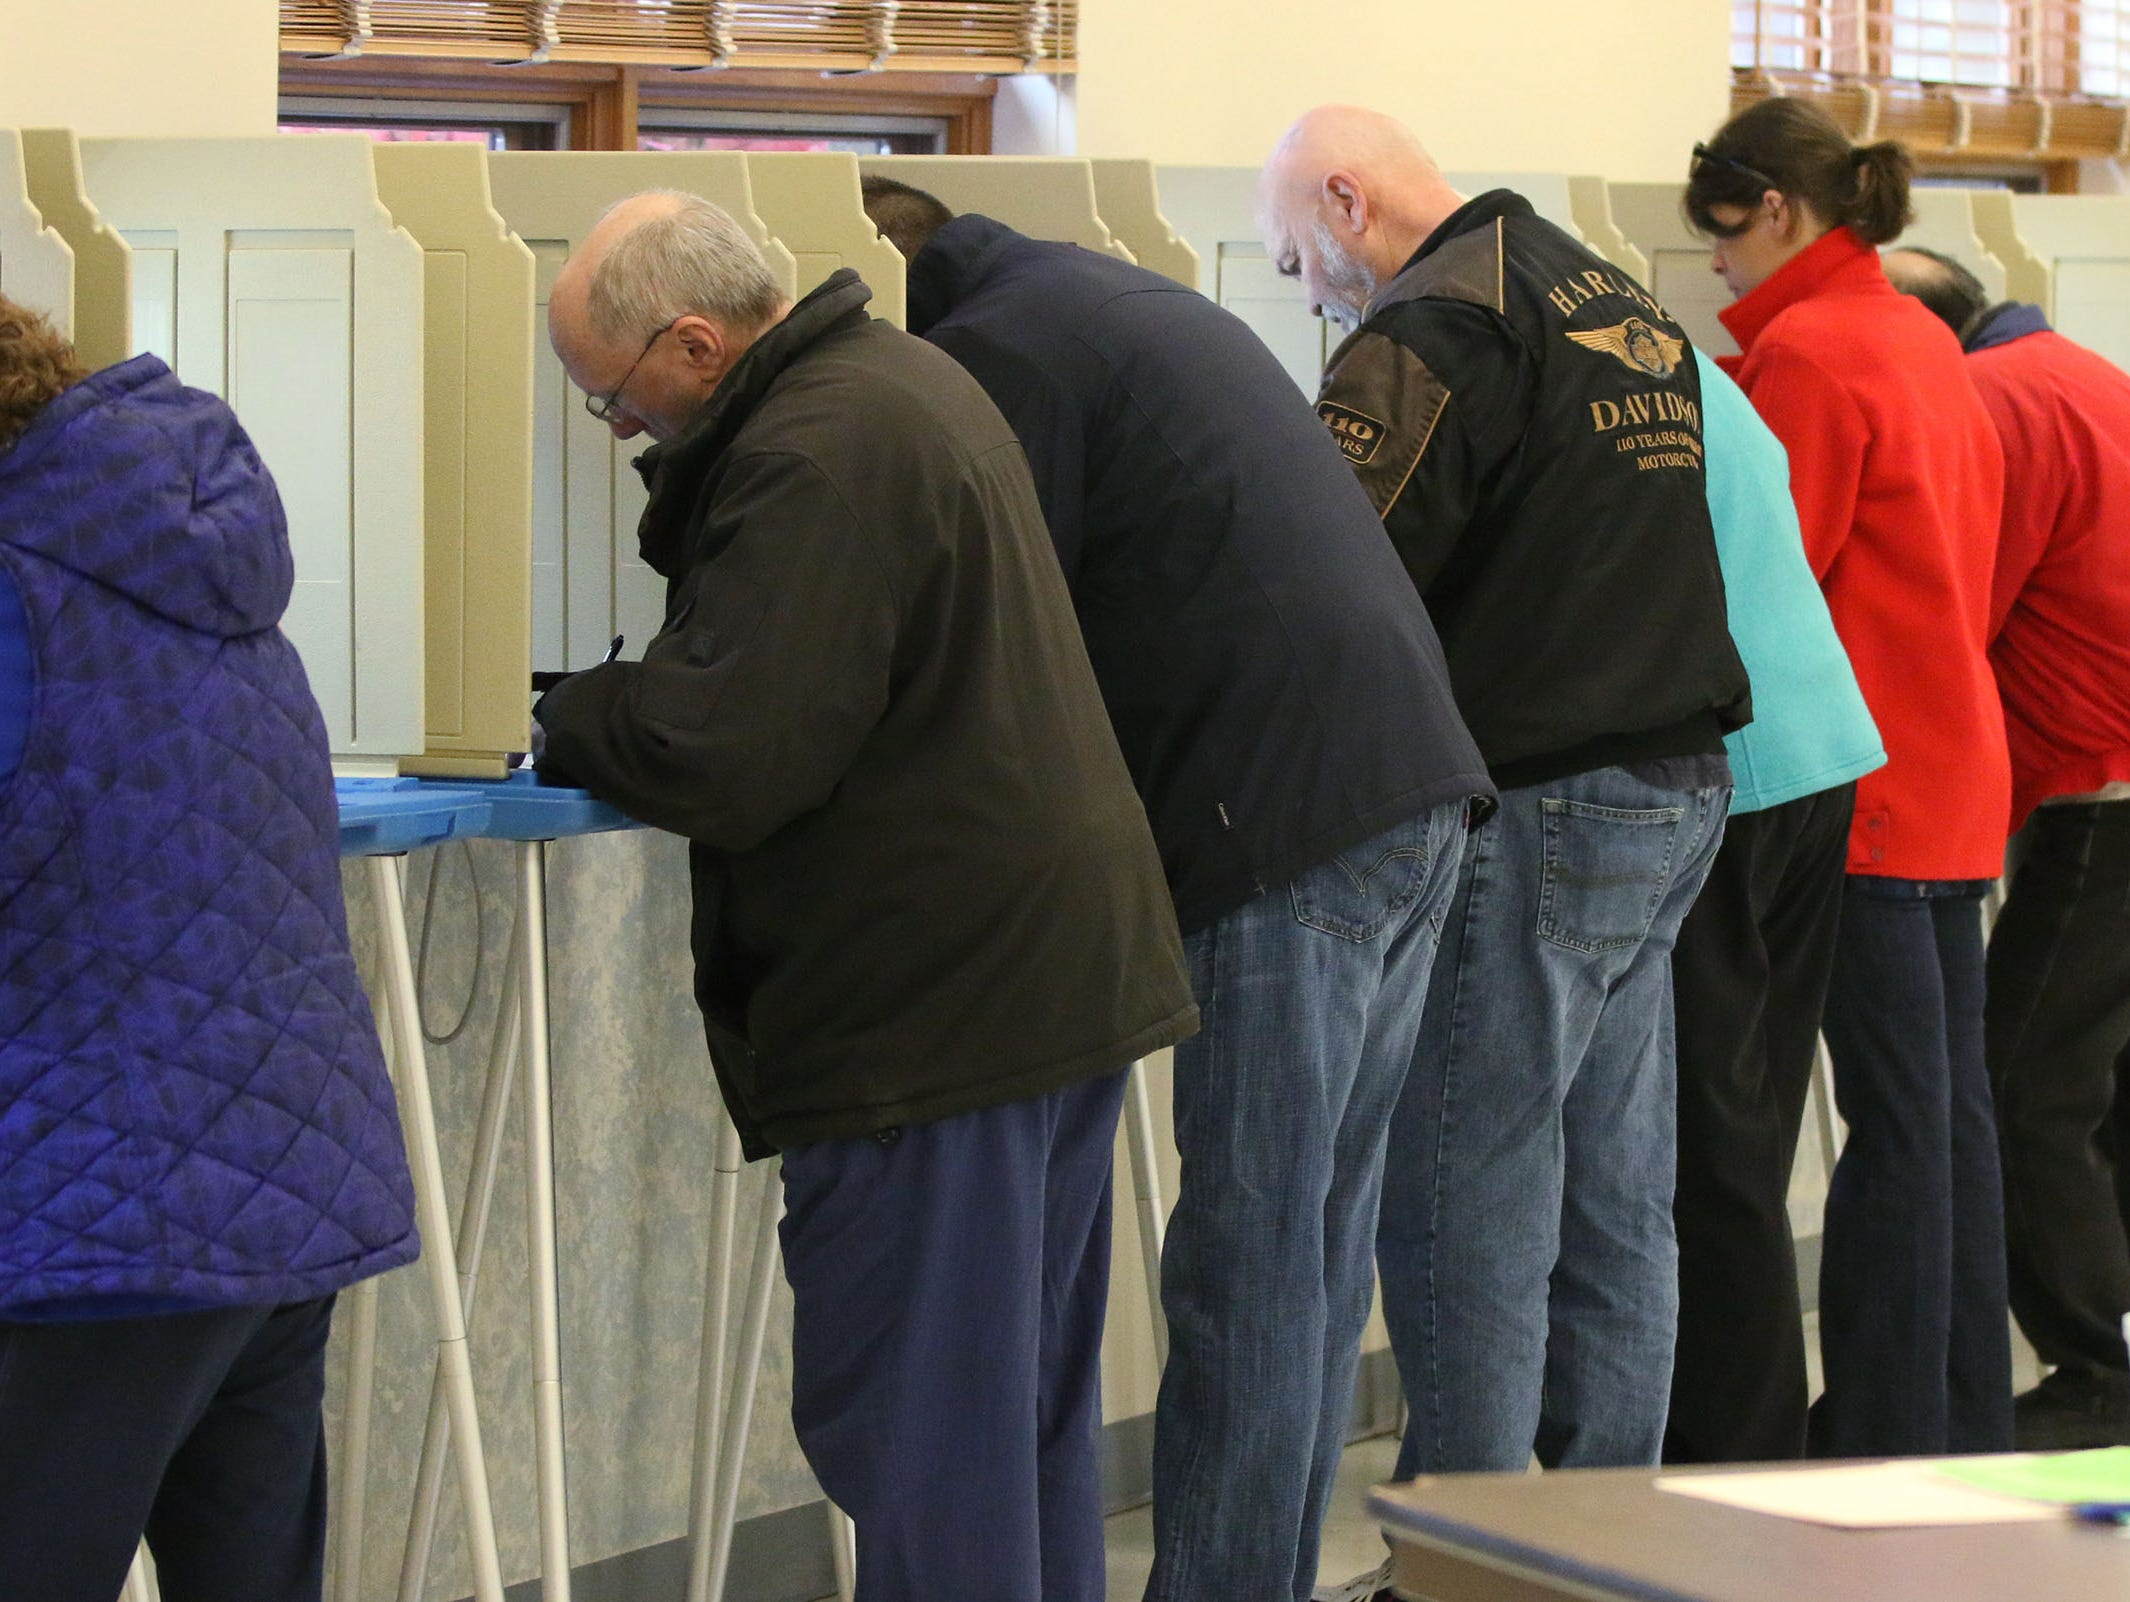 People fill ballot stations at Good Shepard Lutheran Church, Tuesday, November 6, 2018, in Sheboygan, Wis.